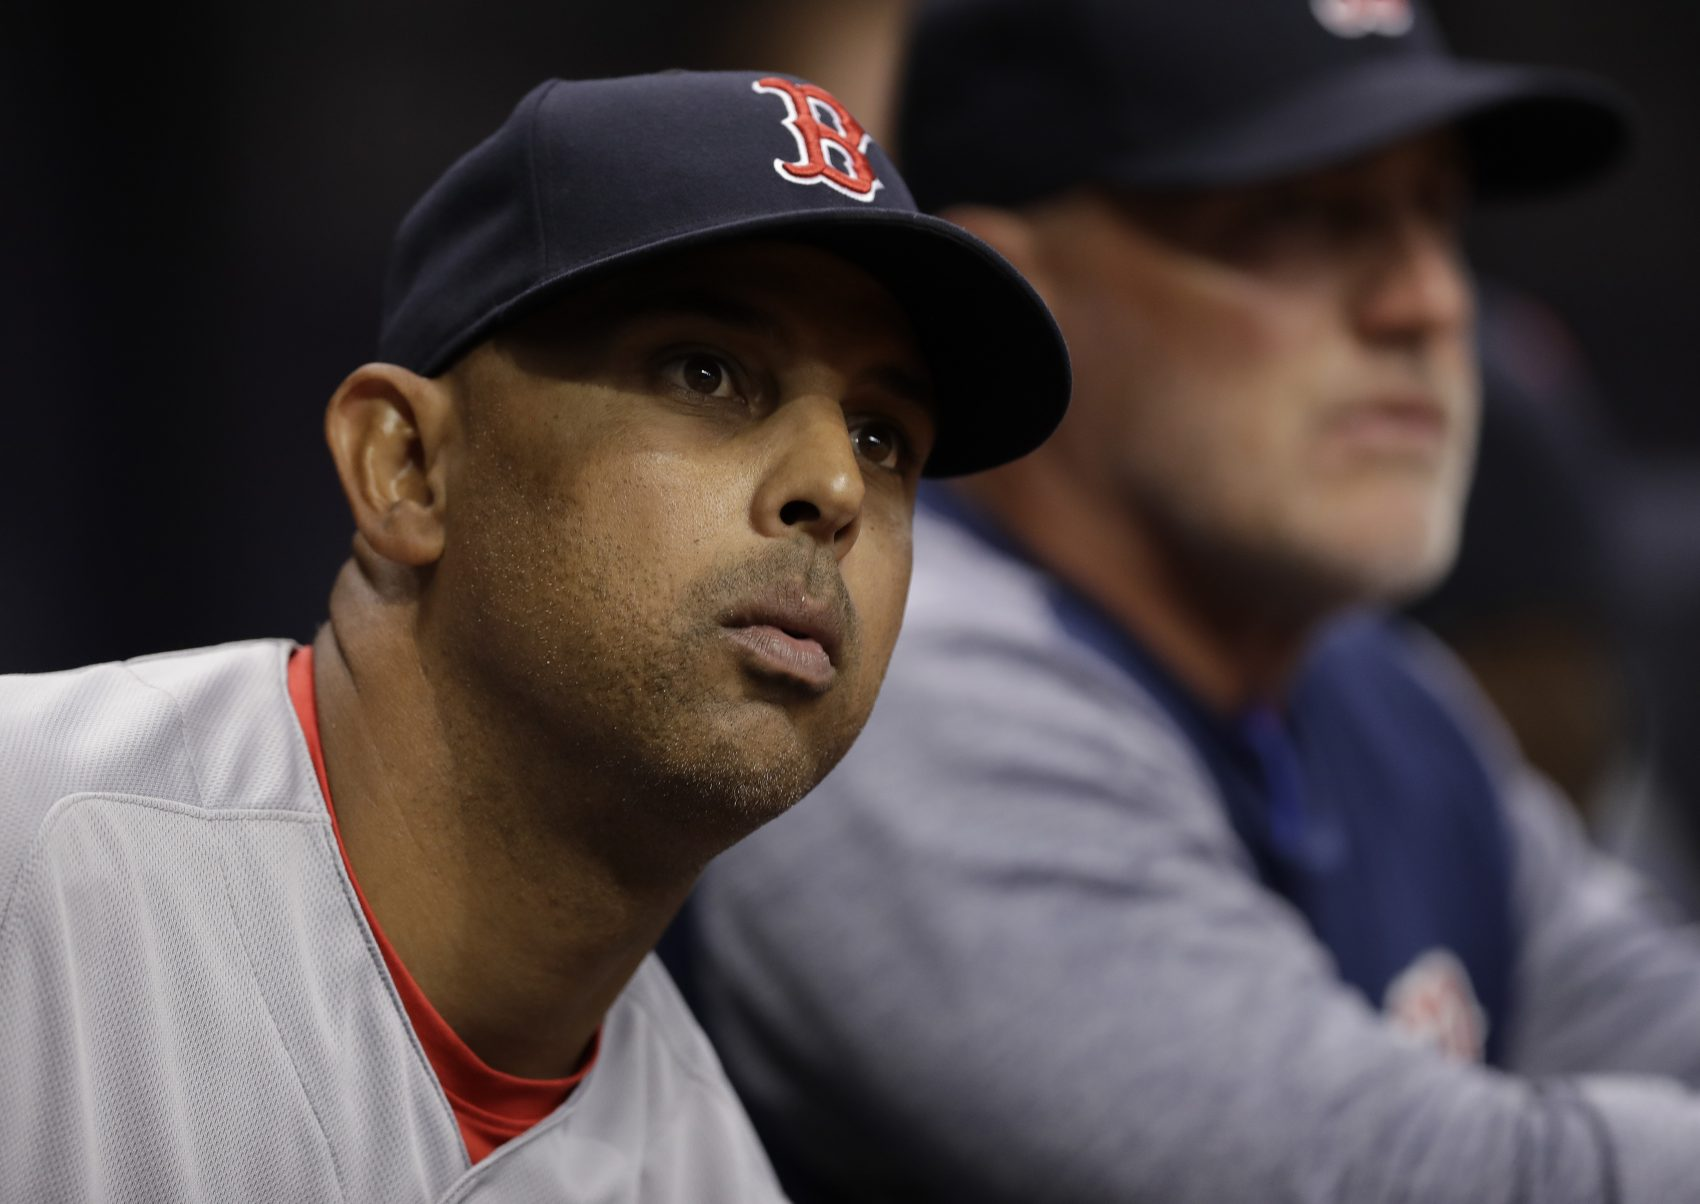 Boston Red Sox manager Alex Cora during the eighth inning of a baseball game against the Tampa Bay Rays Thursday, March 29, 2018, in St. Petersburg, Fla. (Chris O'Meara/AP)